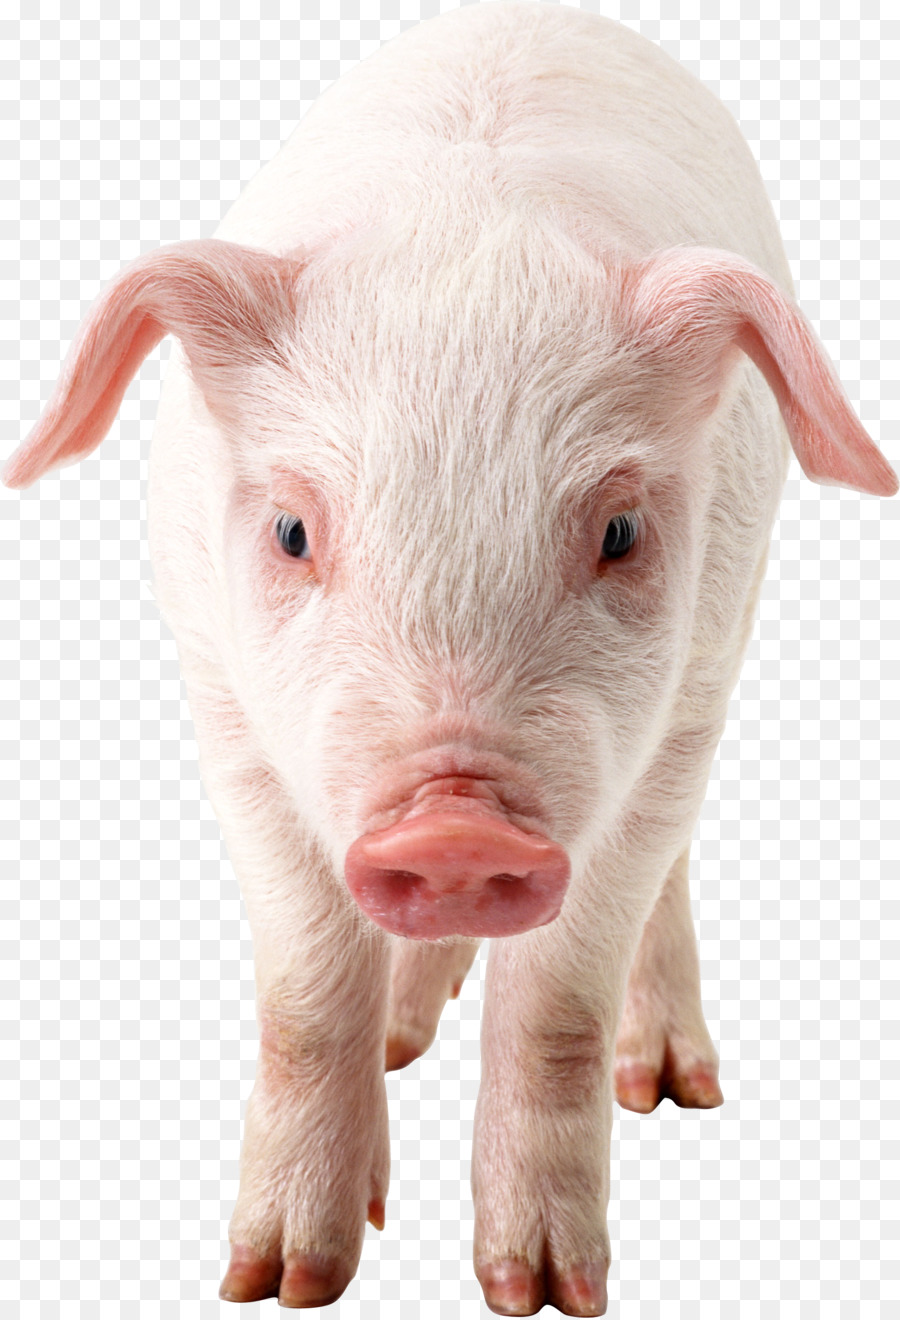 Pig transparent background. Cartoontransparent png image clipart